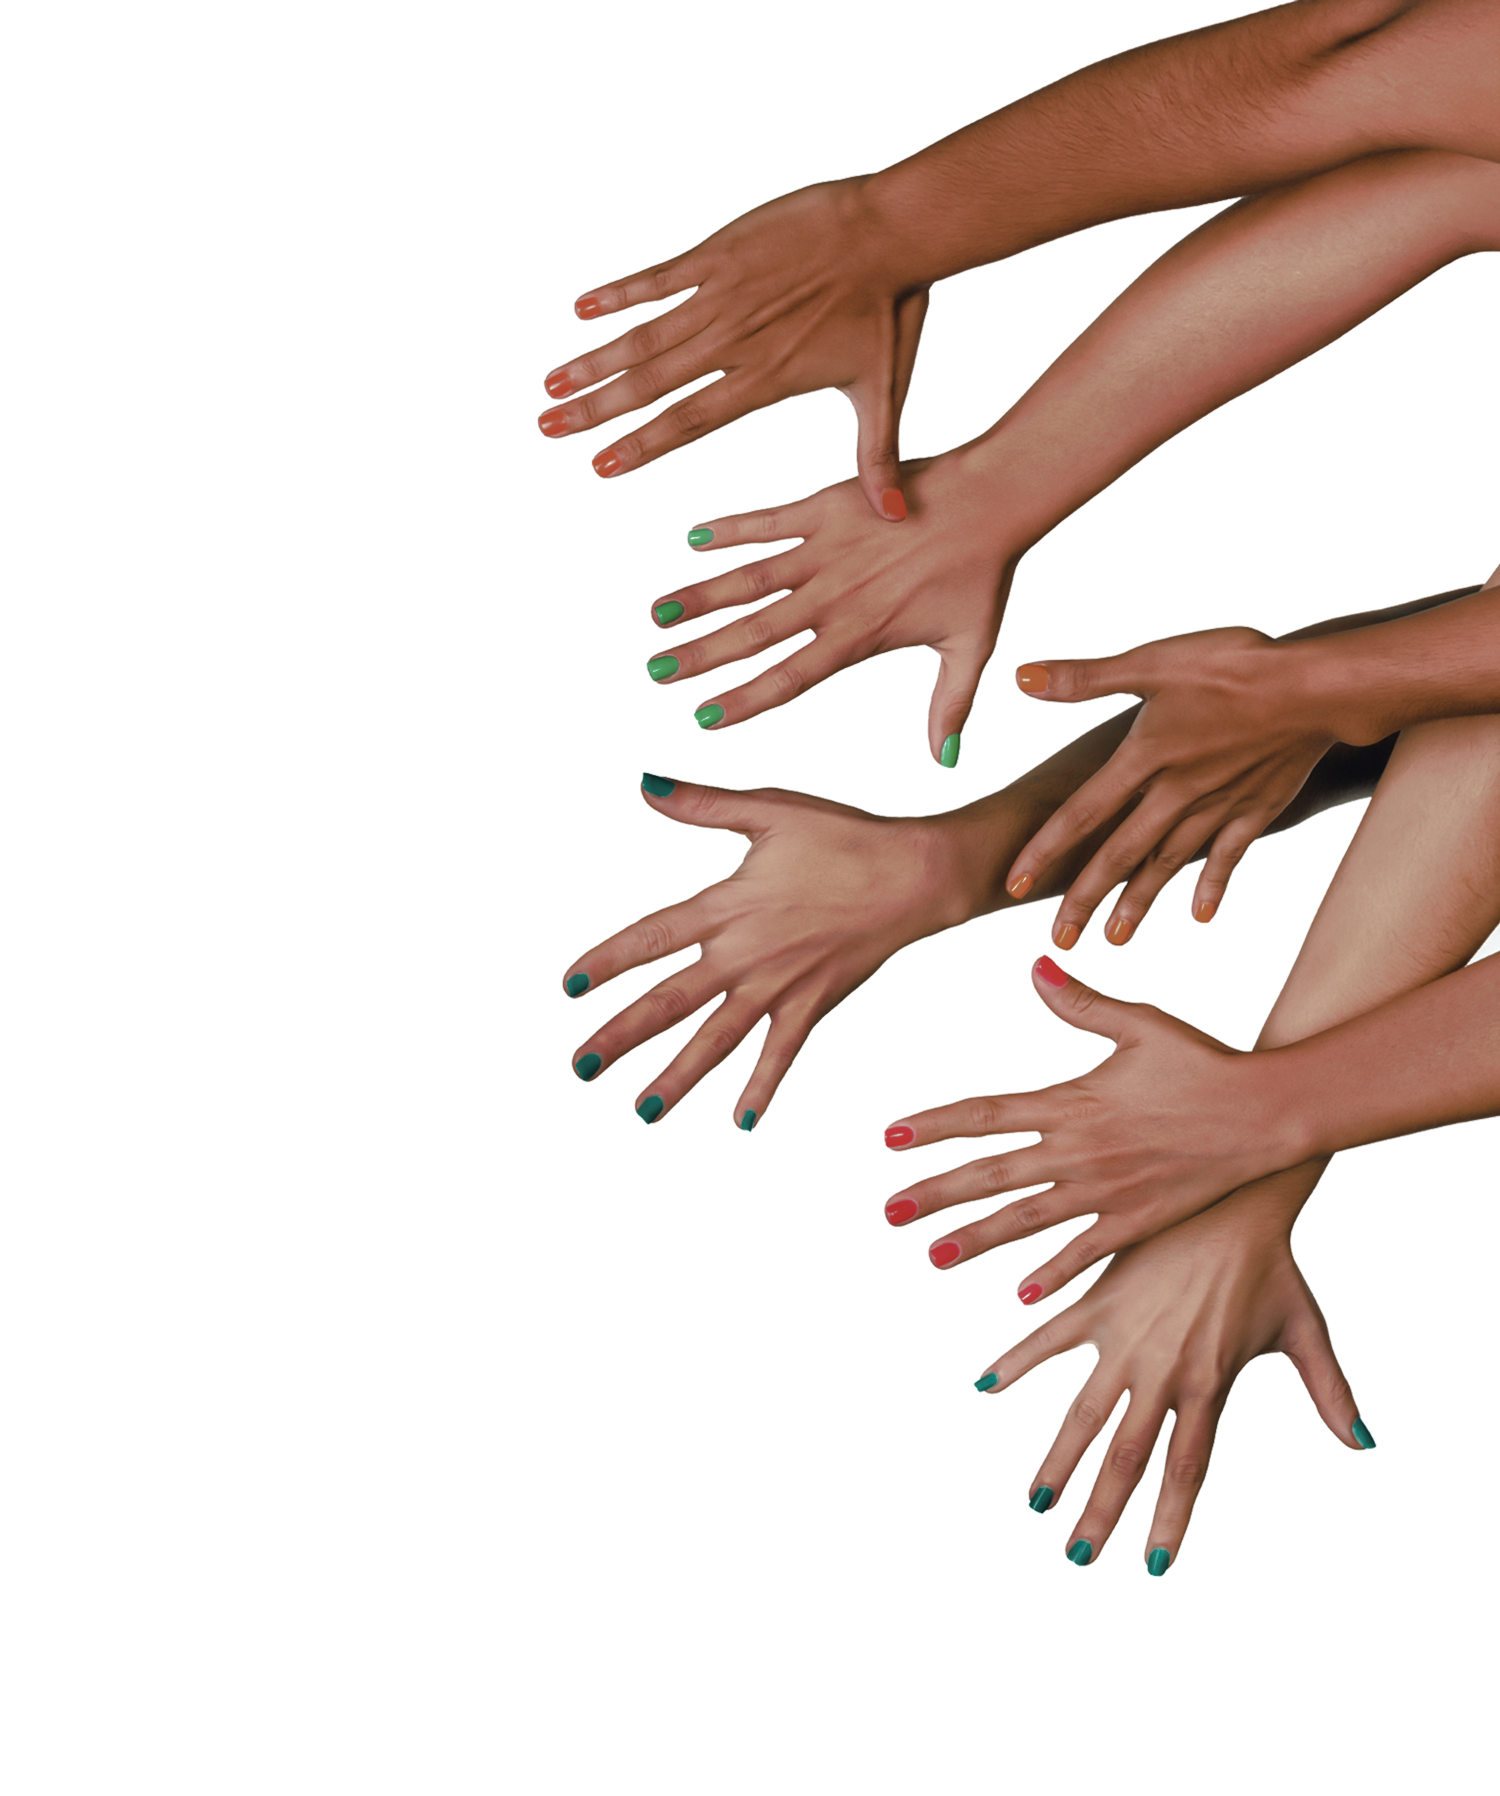 Hand png image transparent 11